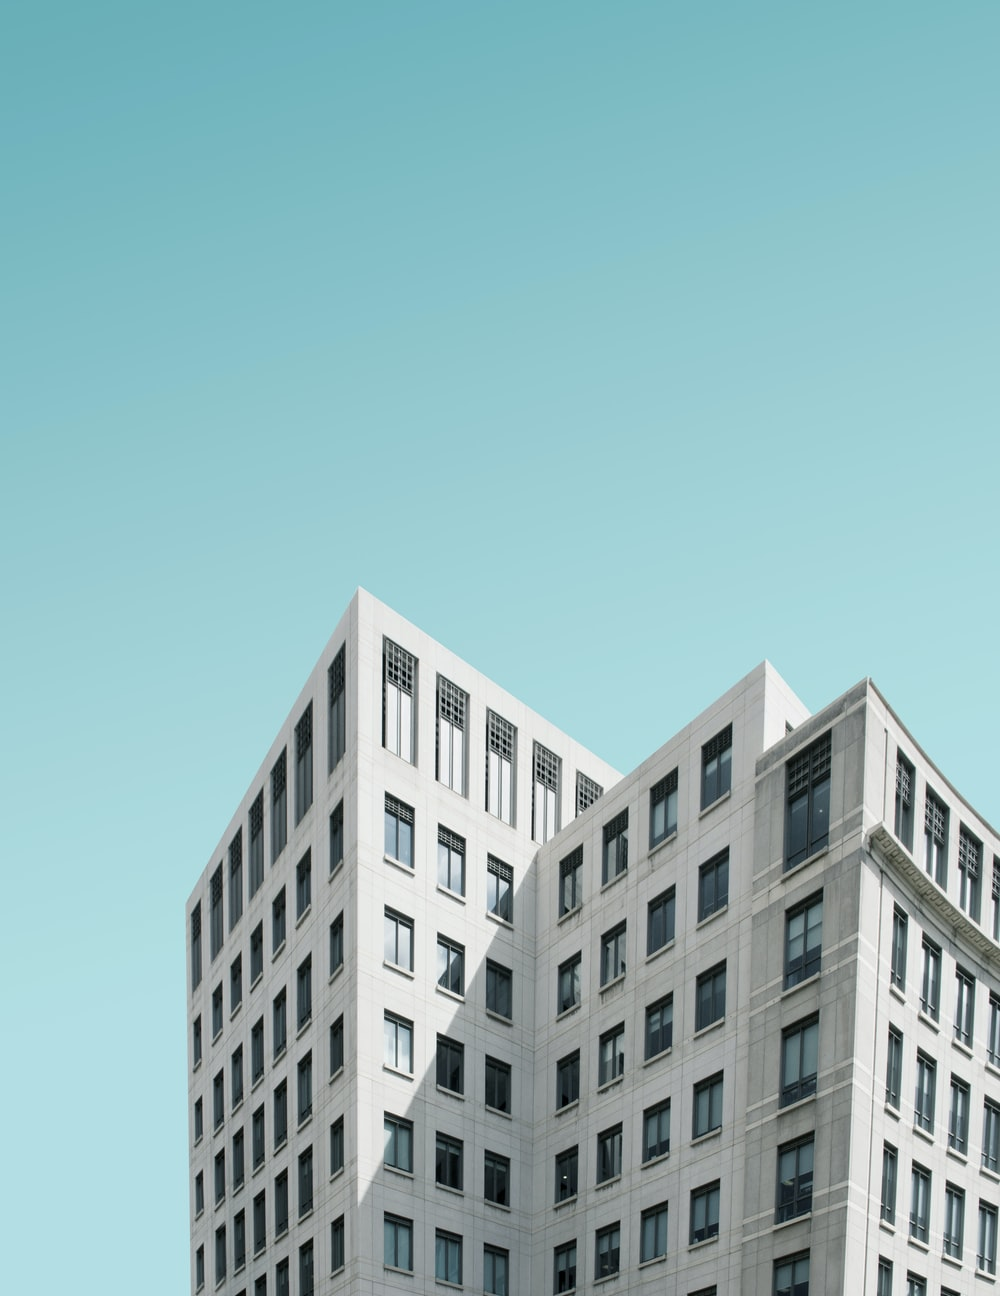 low angle photography of building at daytime